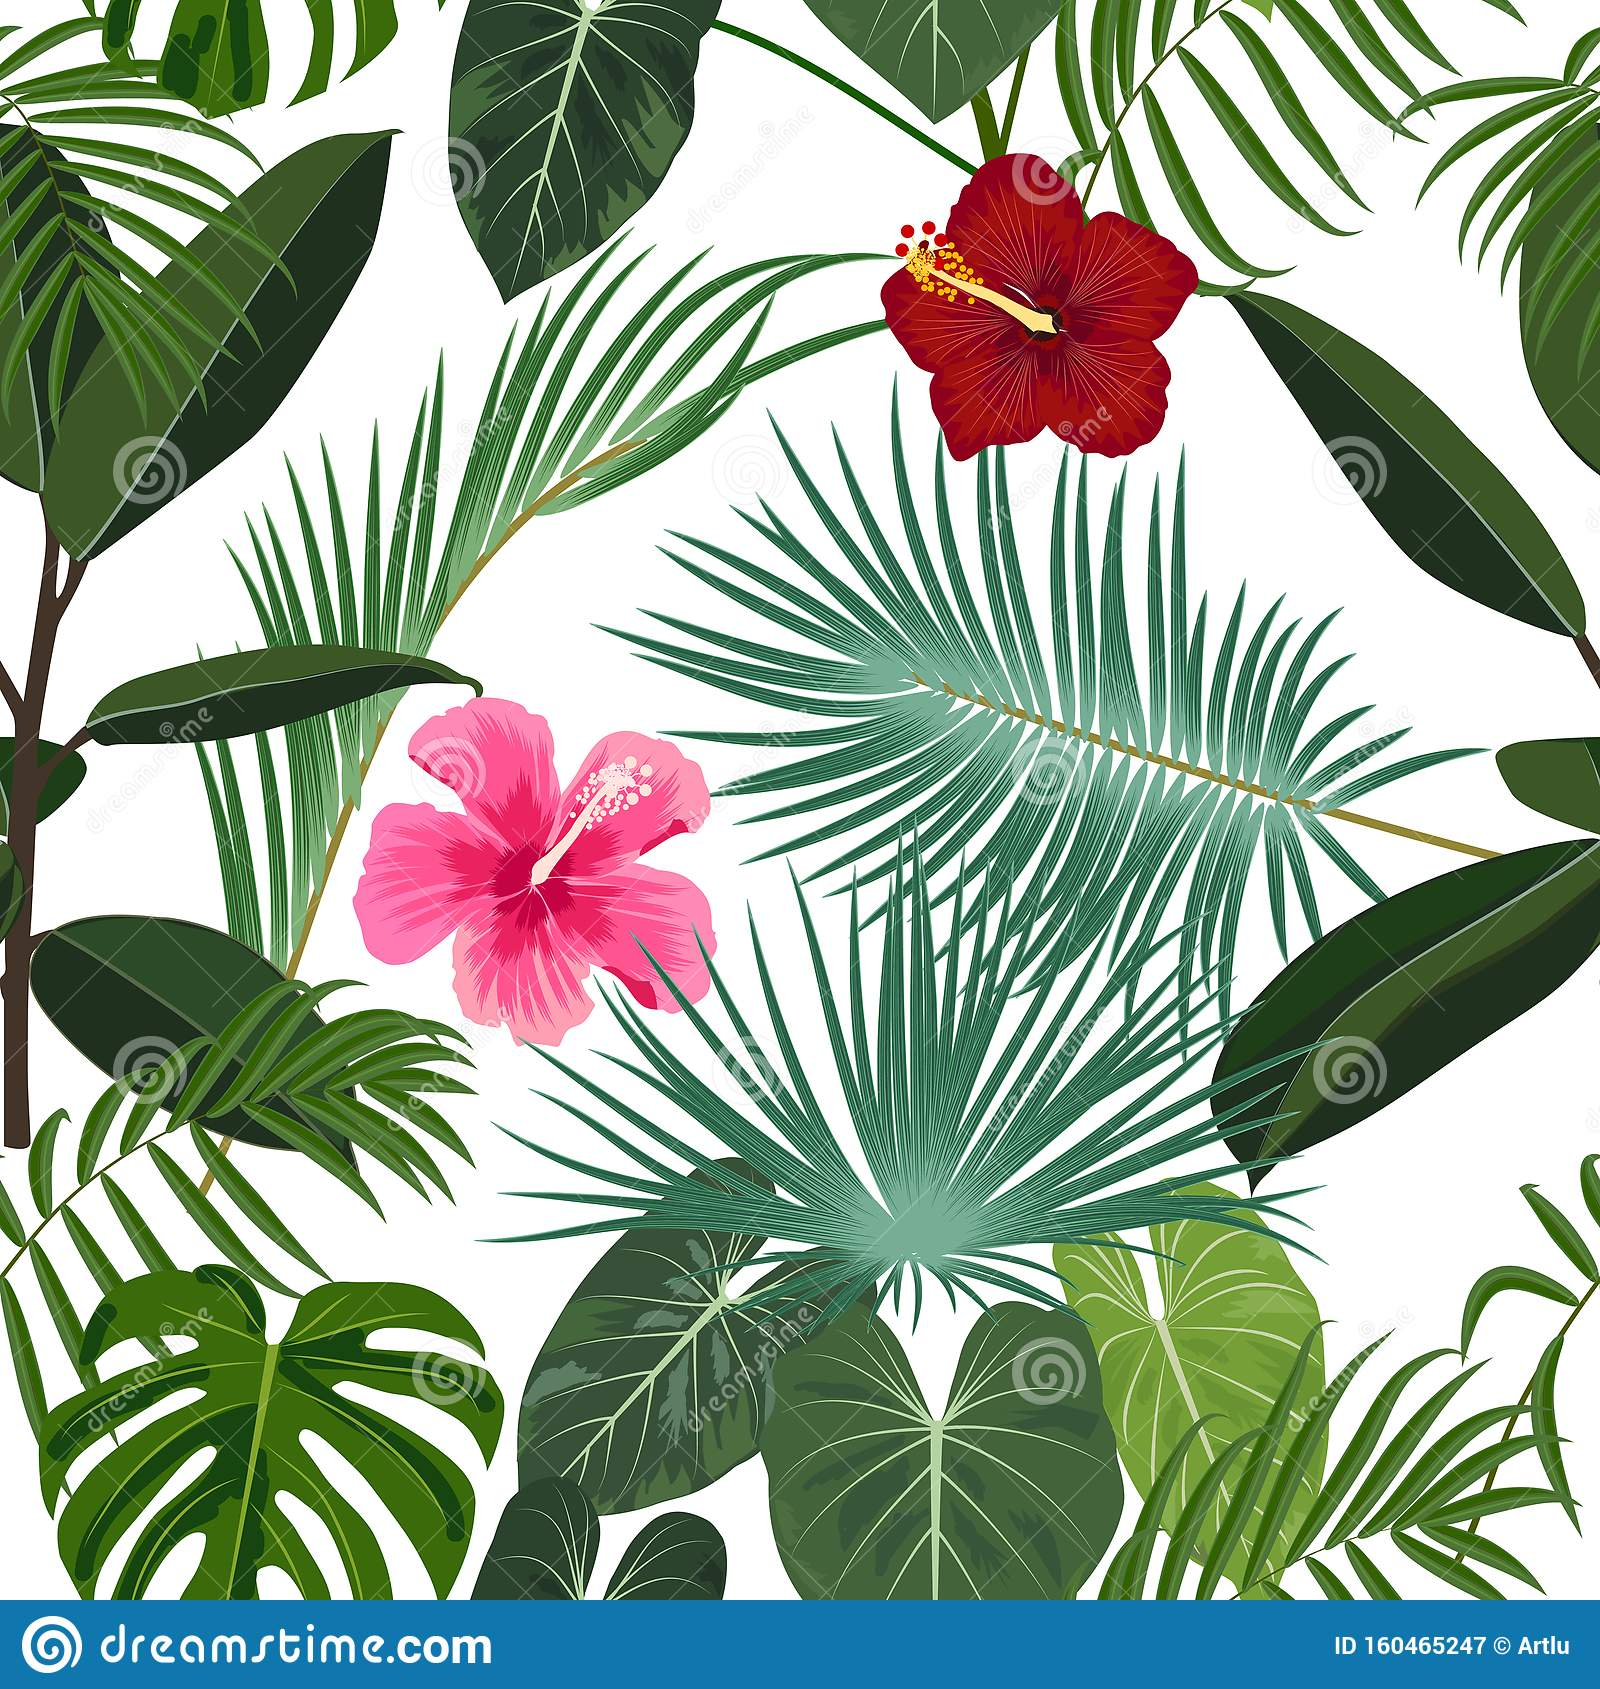 Tropical Jungle Palm Leaves Seamless Pattern Vector Background Stock Vector Illustration Of Background Ficus 160465247 Trees of wet tropical rain forests tend to be. https www dreamstime com vector tropical jungle seamless pattern flowers palm trees leaves ficus background wedding quotes birthday invitation image160465247